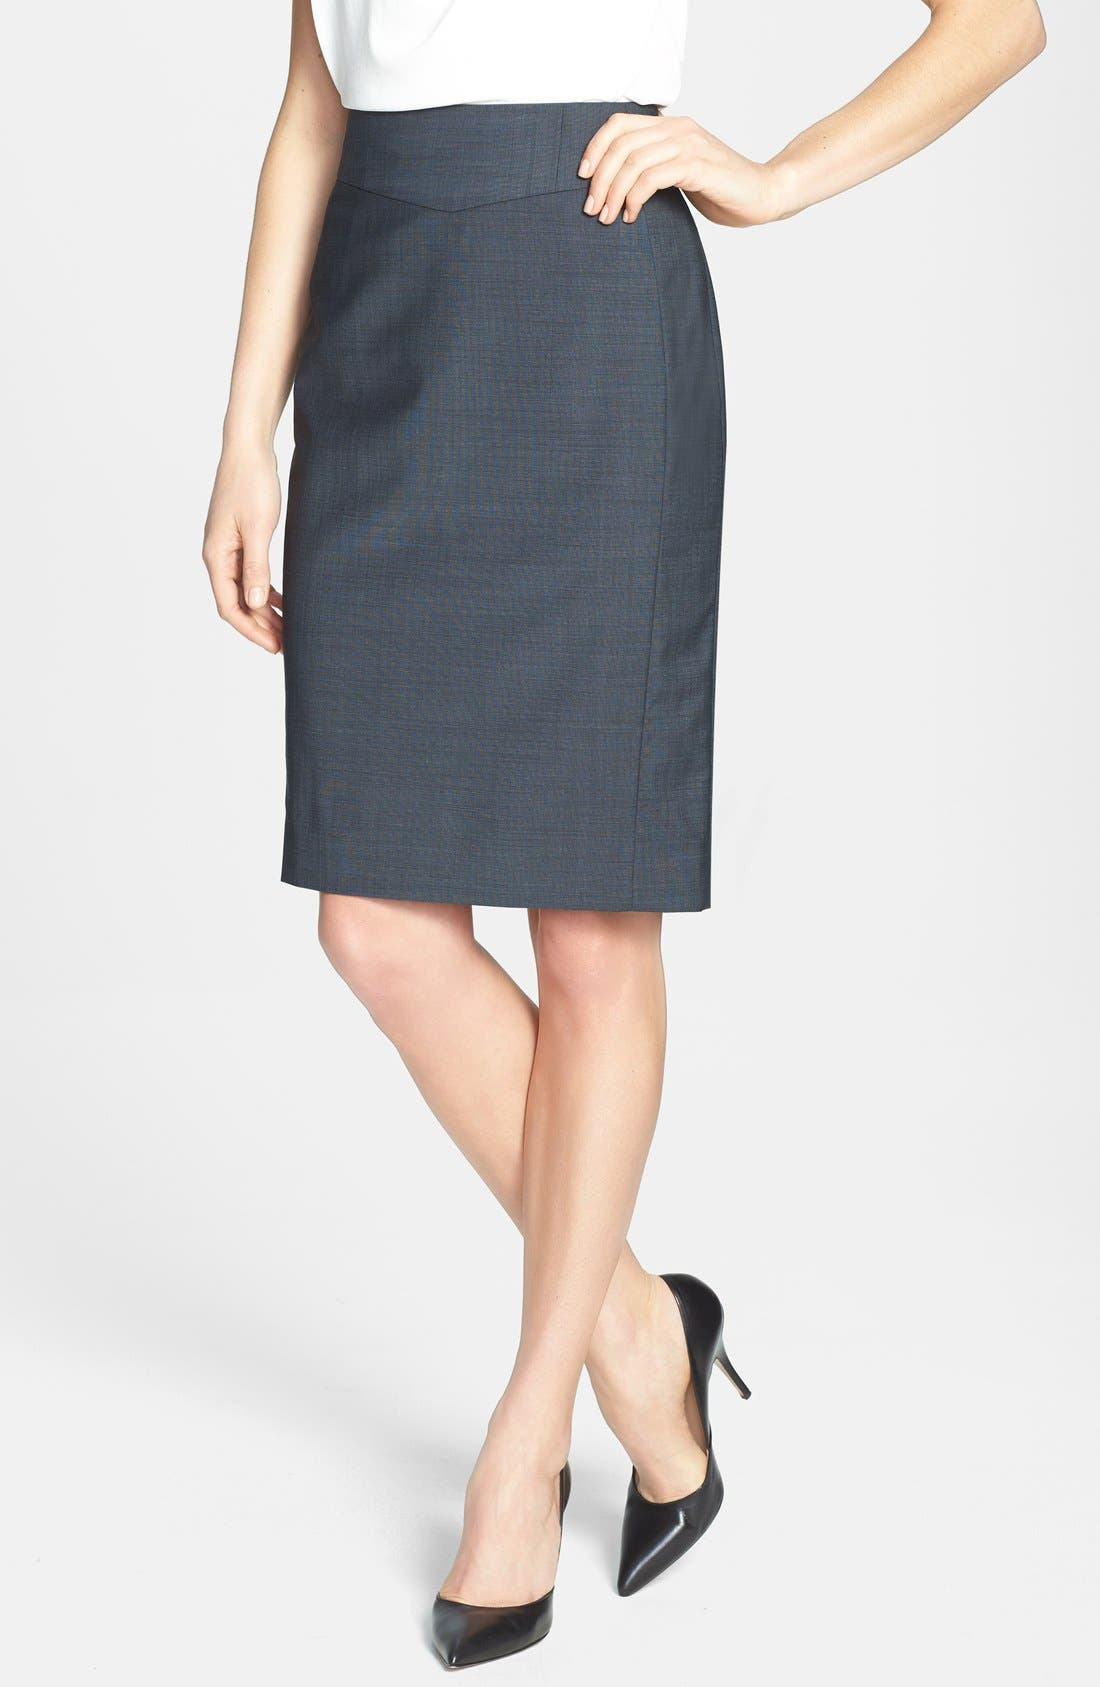 Alternate Image 1 Selected - Classiques Entier® 'Viviane Suiting' Stretch Wool Pencil Skirt